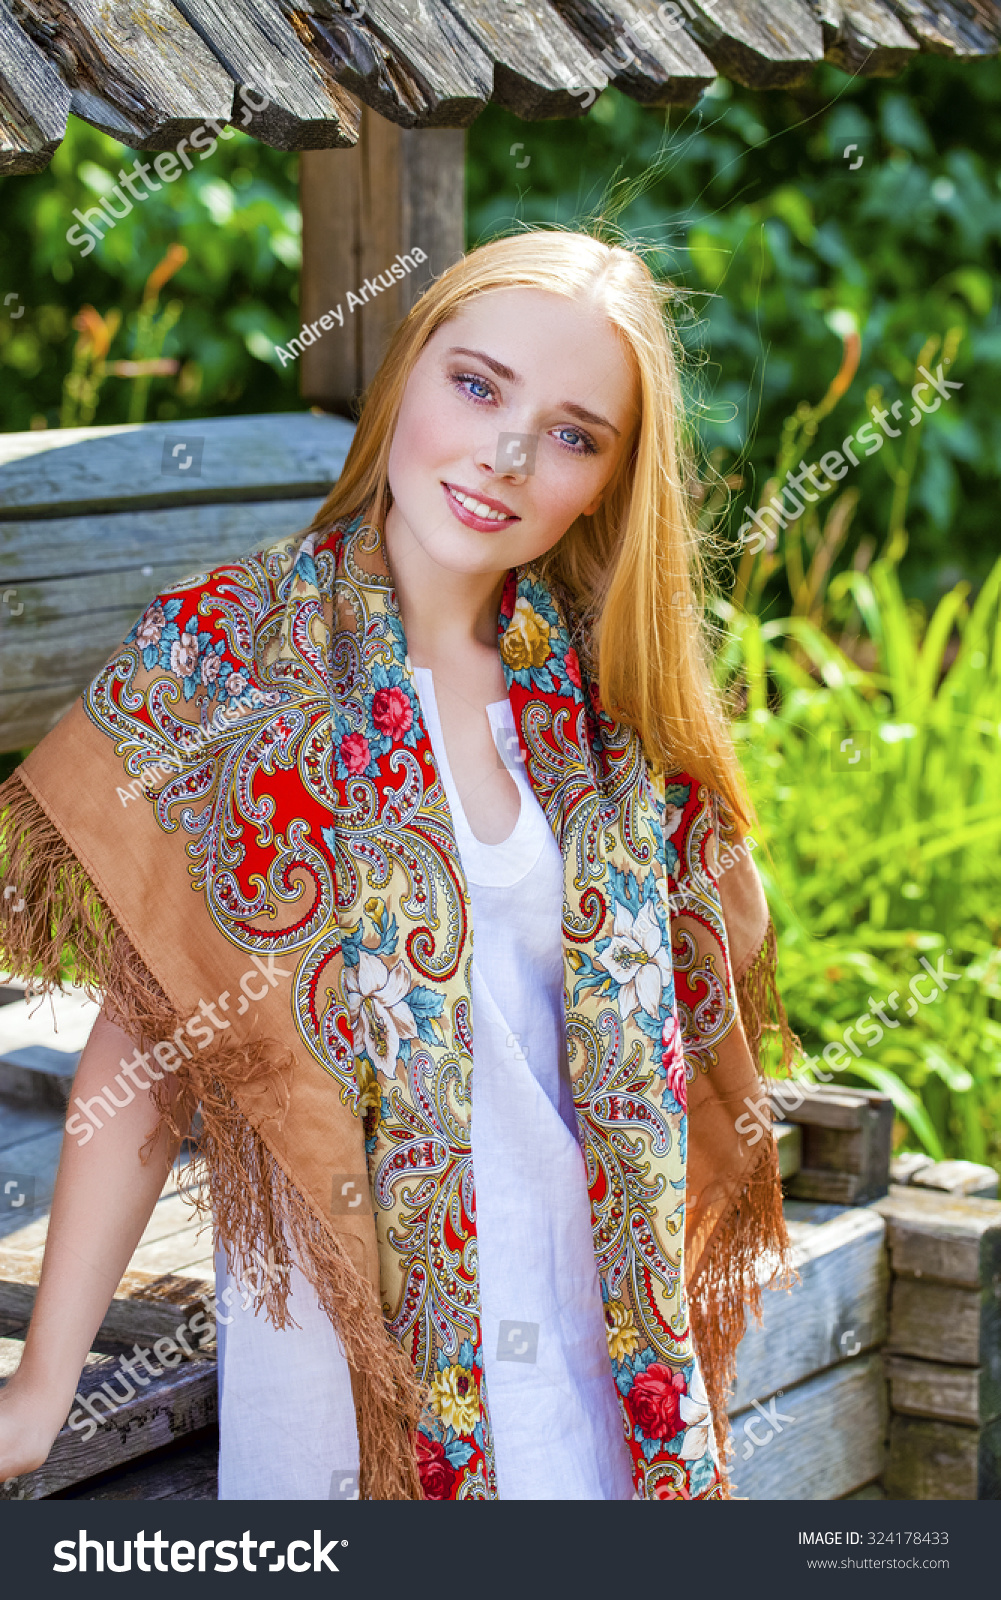 https://image.shutterstock.com/z/stock-photo-russian-beauty-woman-in-the-national-patterned-scarf-324178433.jpg